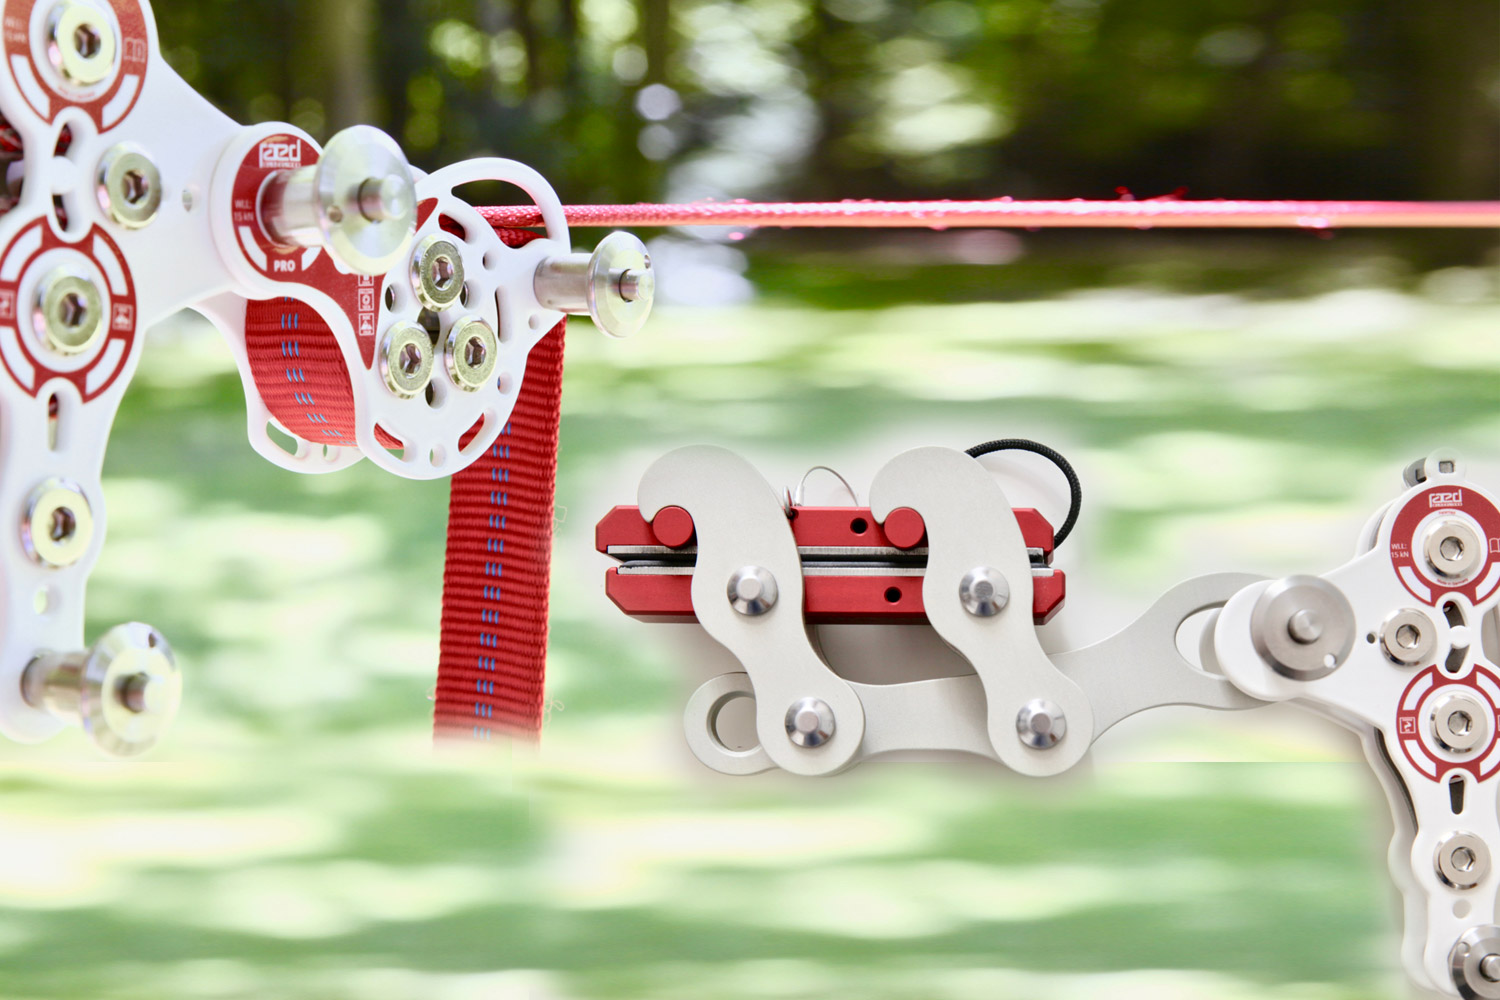 PRO slackline pulley system connected to LineGrip and weblock